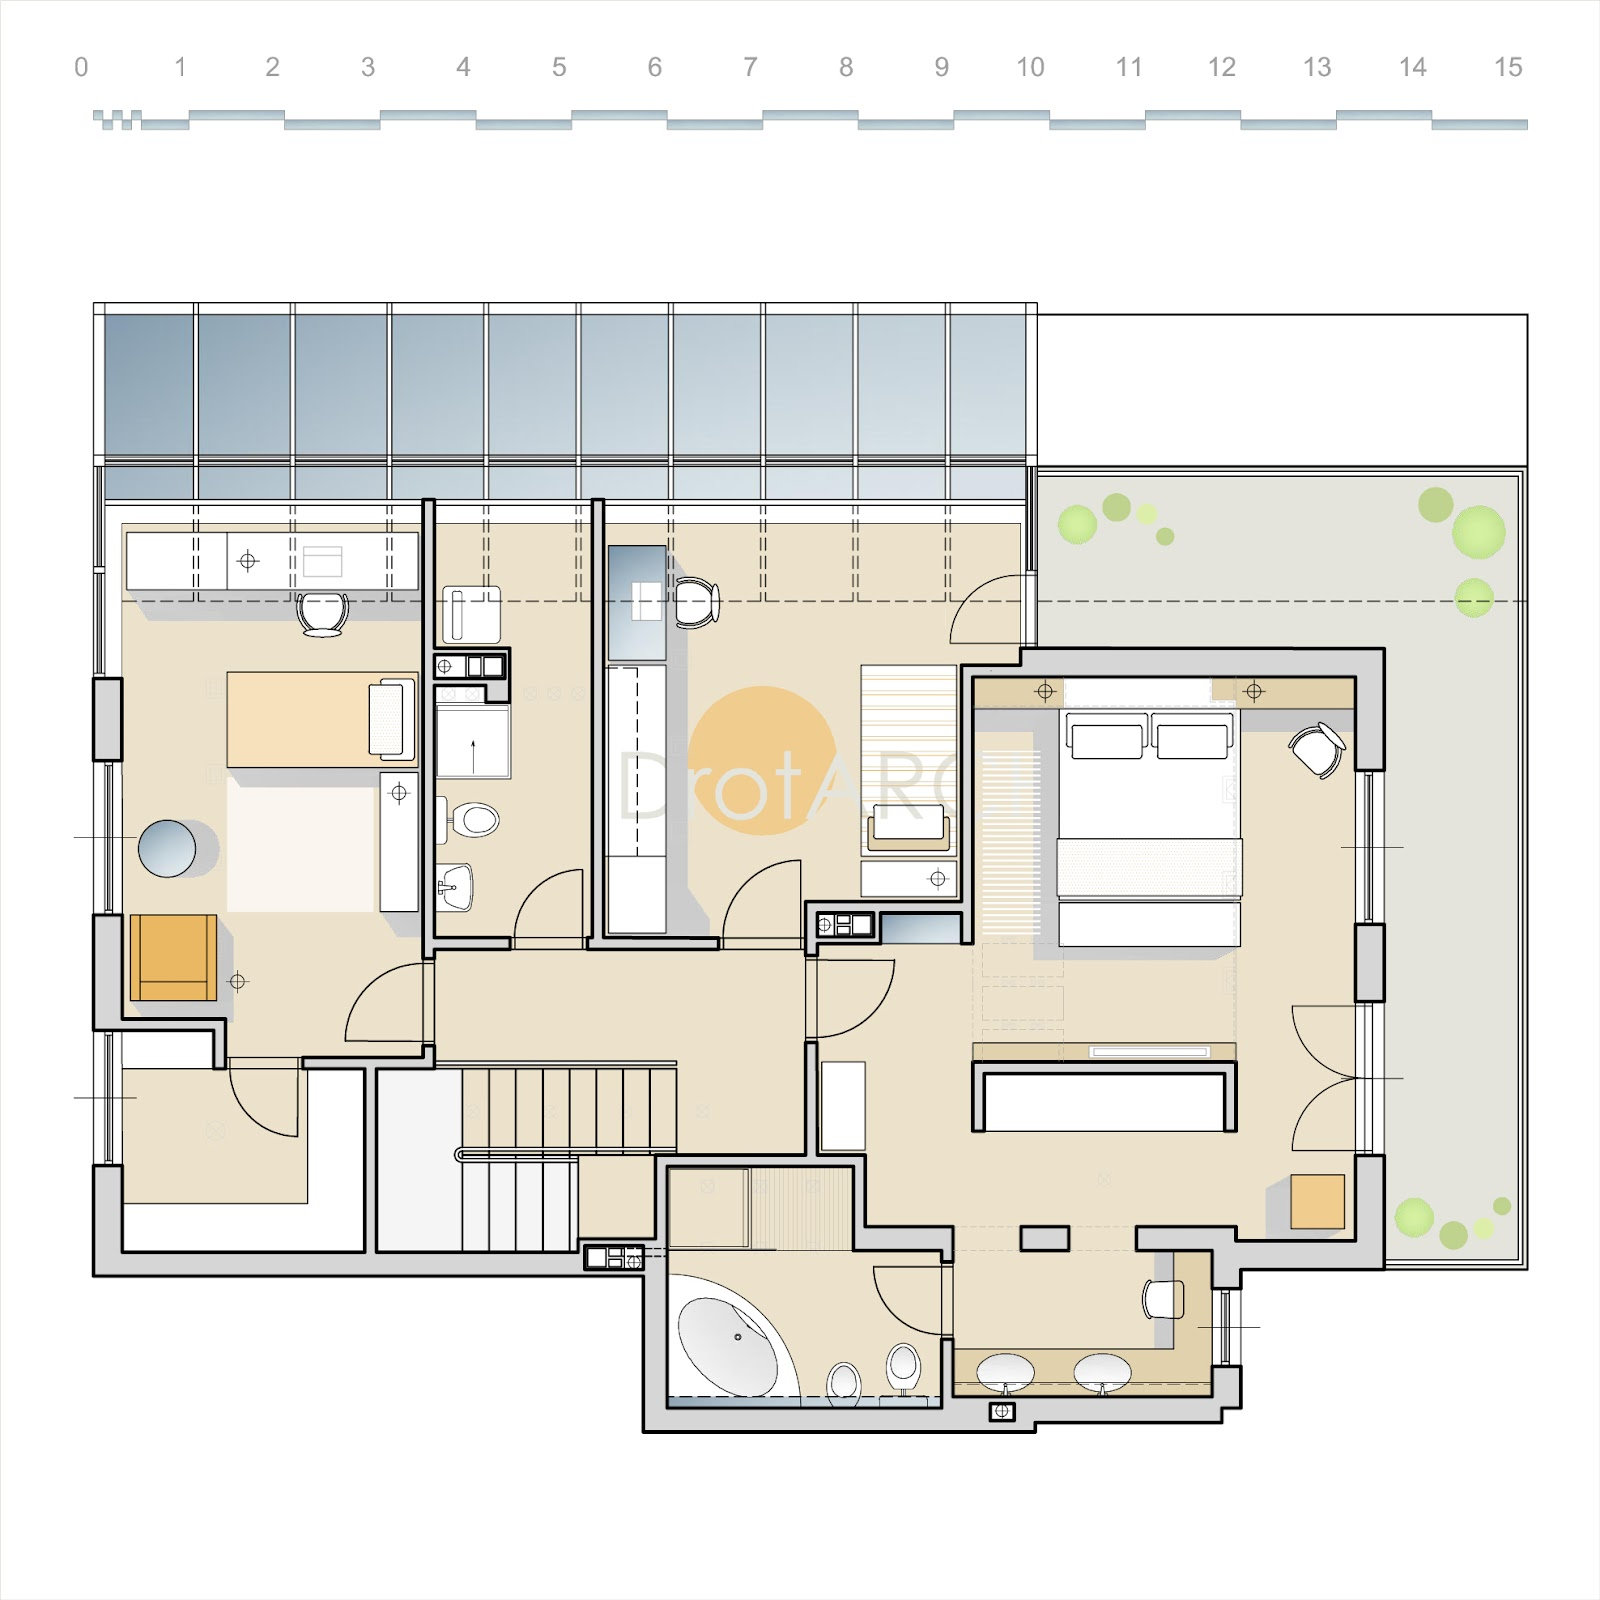 2 bedroom duplex apartment plans apartment design ideas for Duplex apartment plans